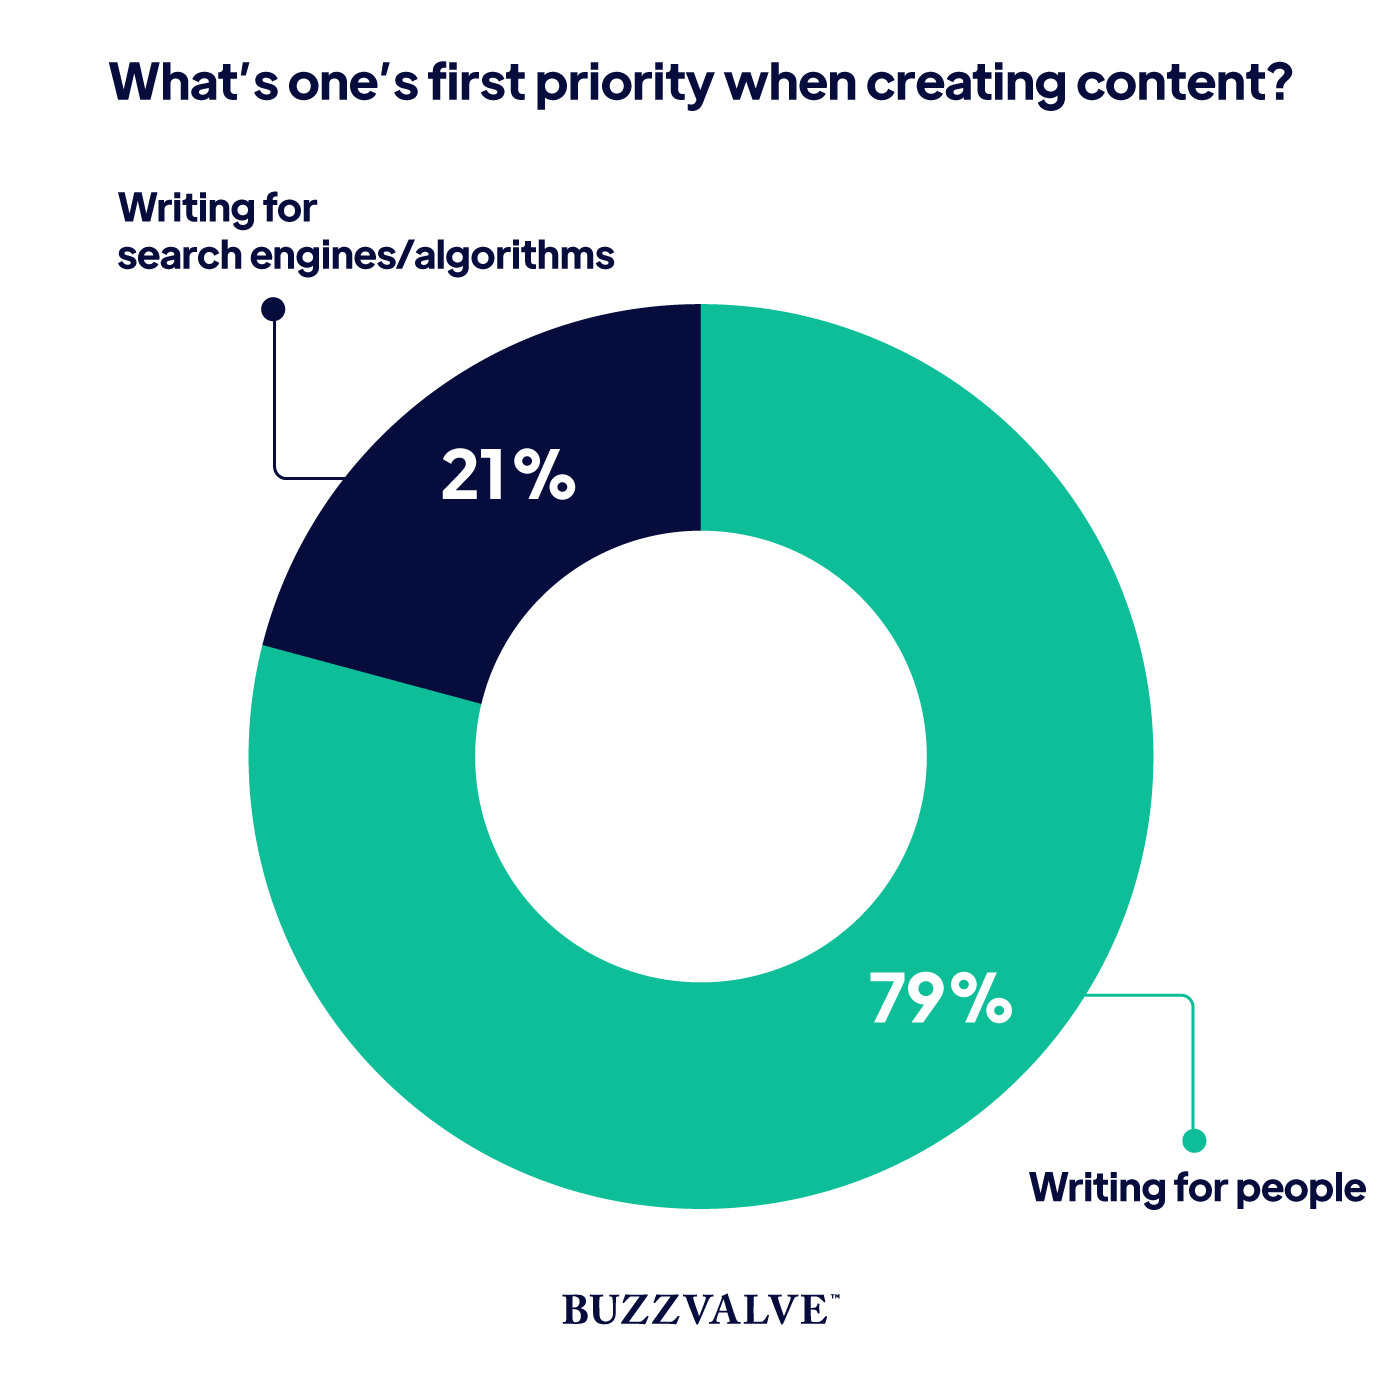 First priority when creating content